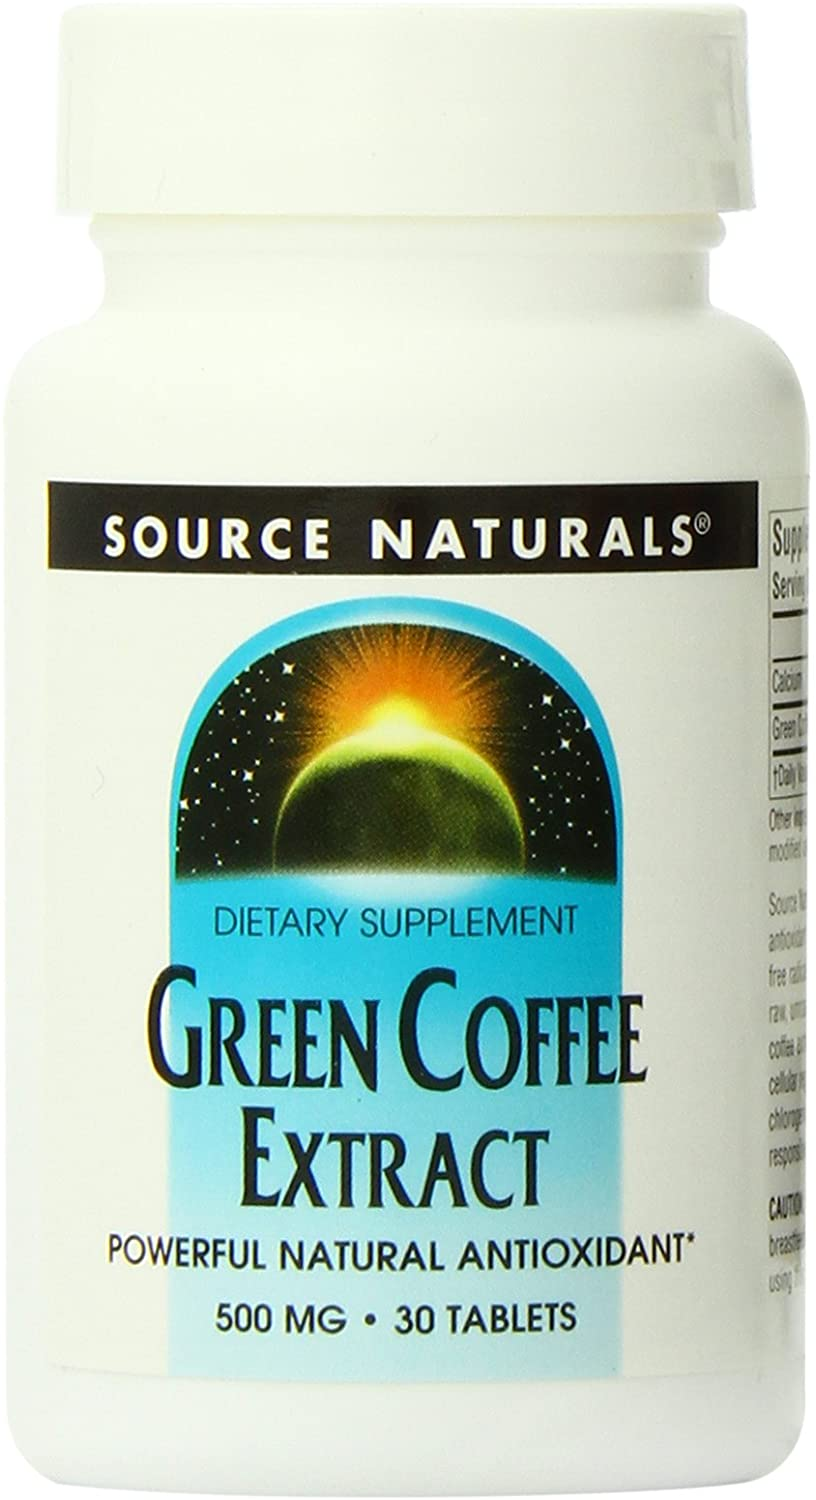 Source Naturals Green Coffee Extract, 30 Tablets